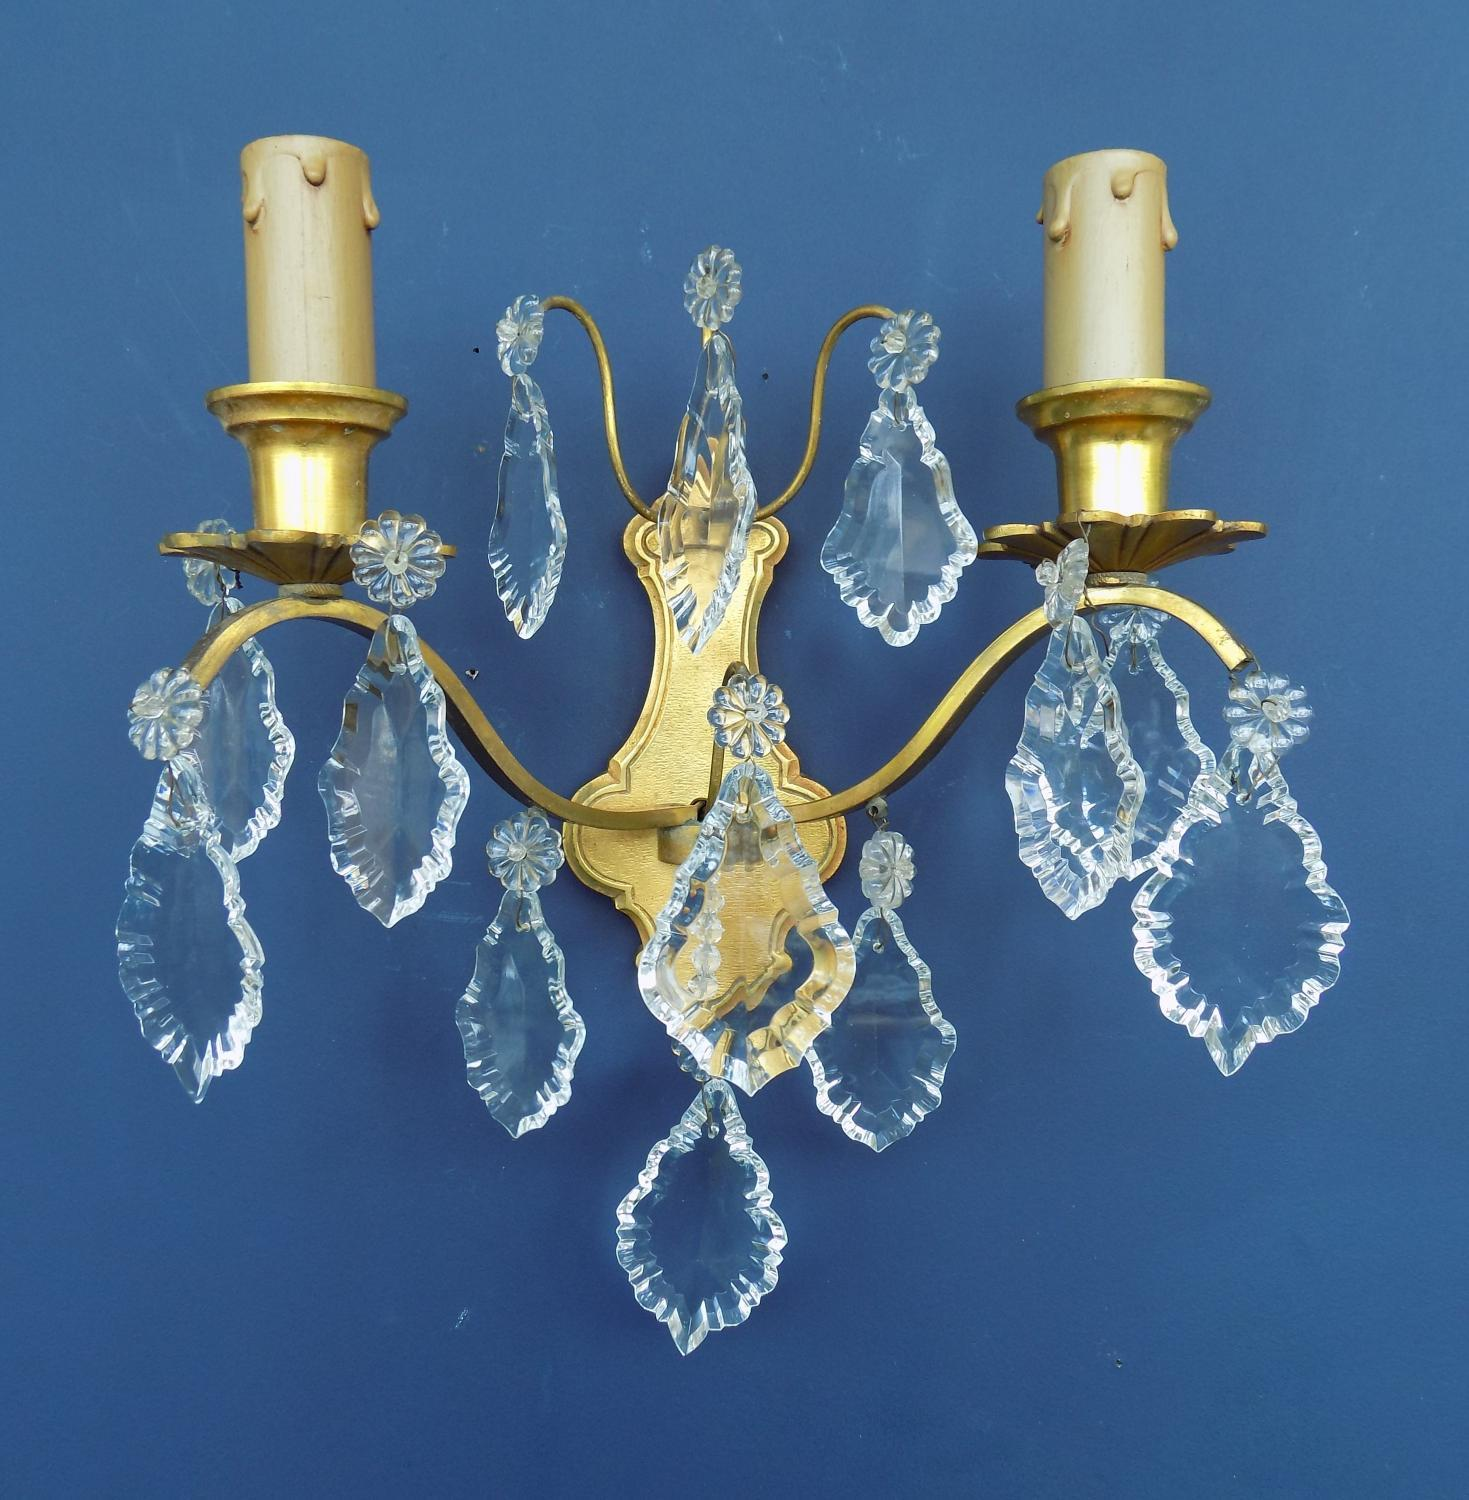 1930's Brass & Crystal Wall Sconce